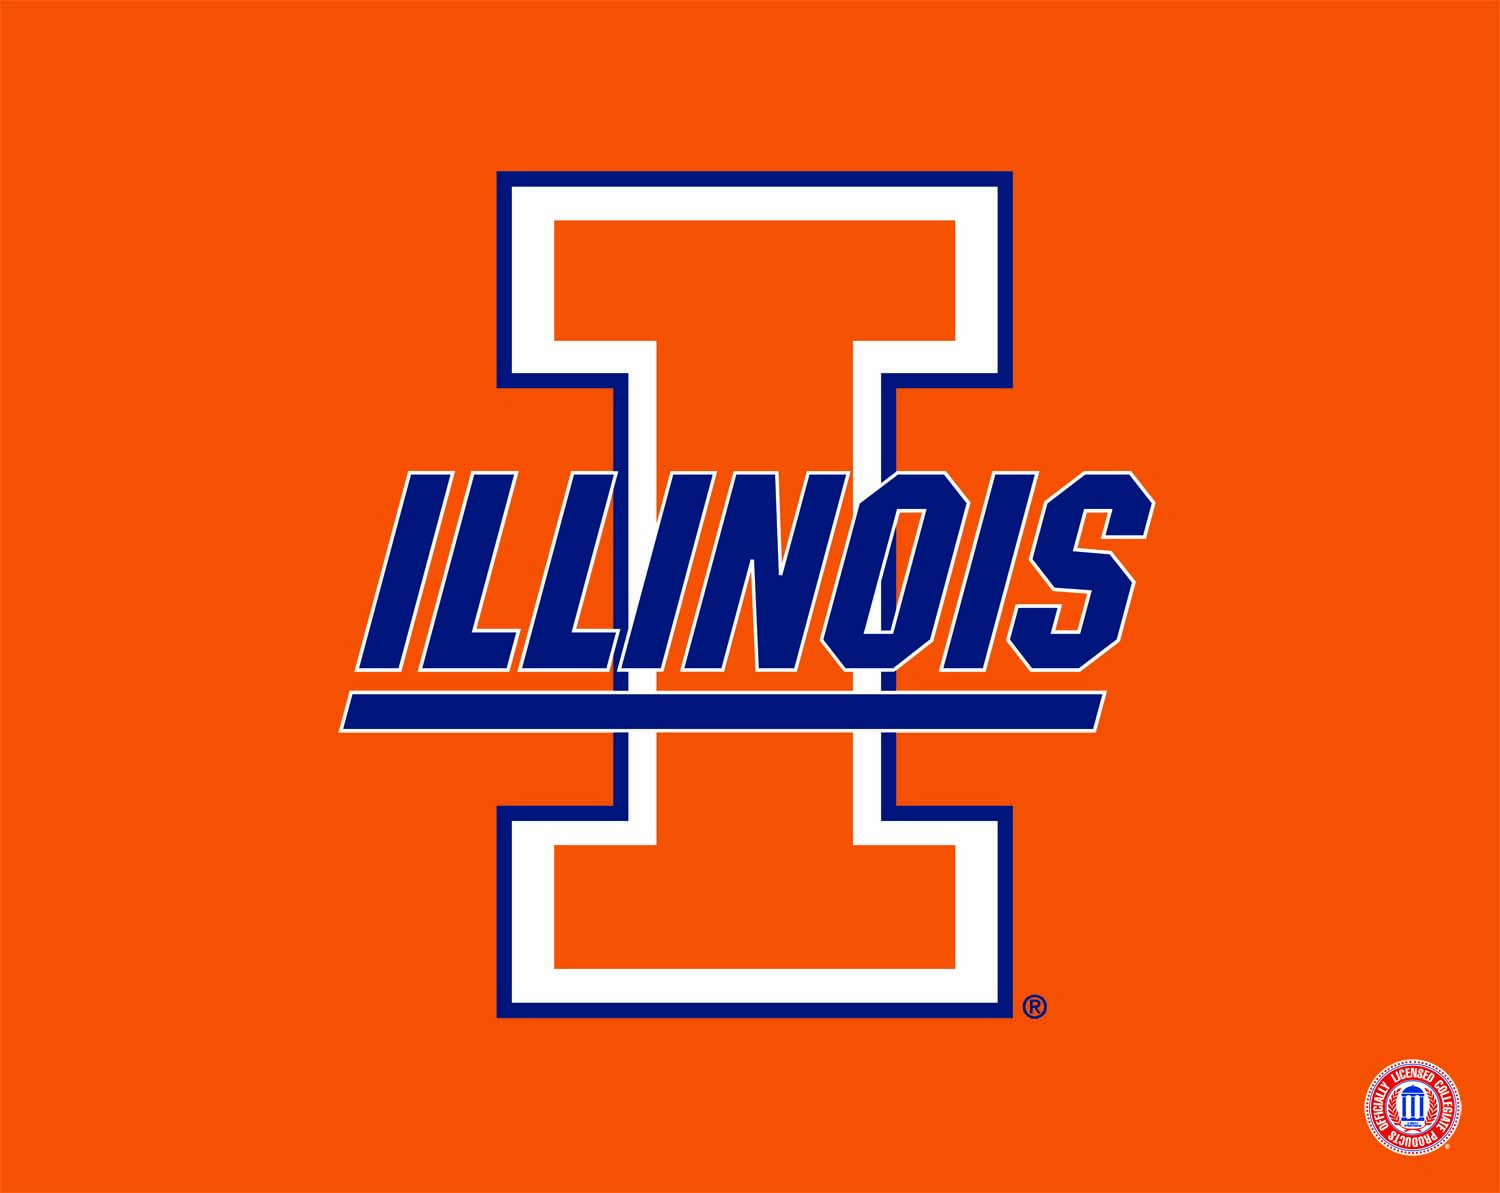 Illinois Fighting Illini Logo Illinois Fighting Illini Fighting Illini Illinois